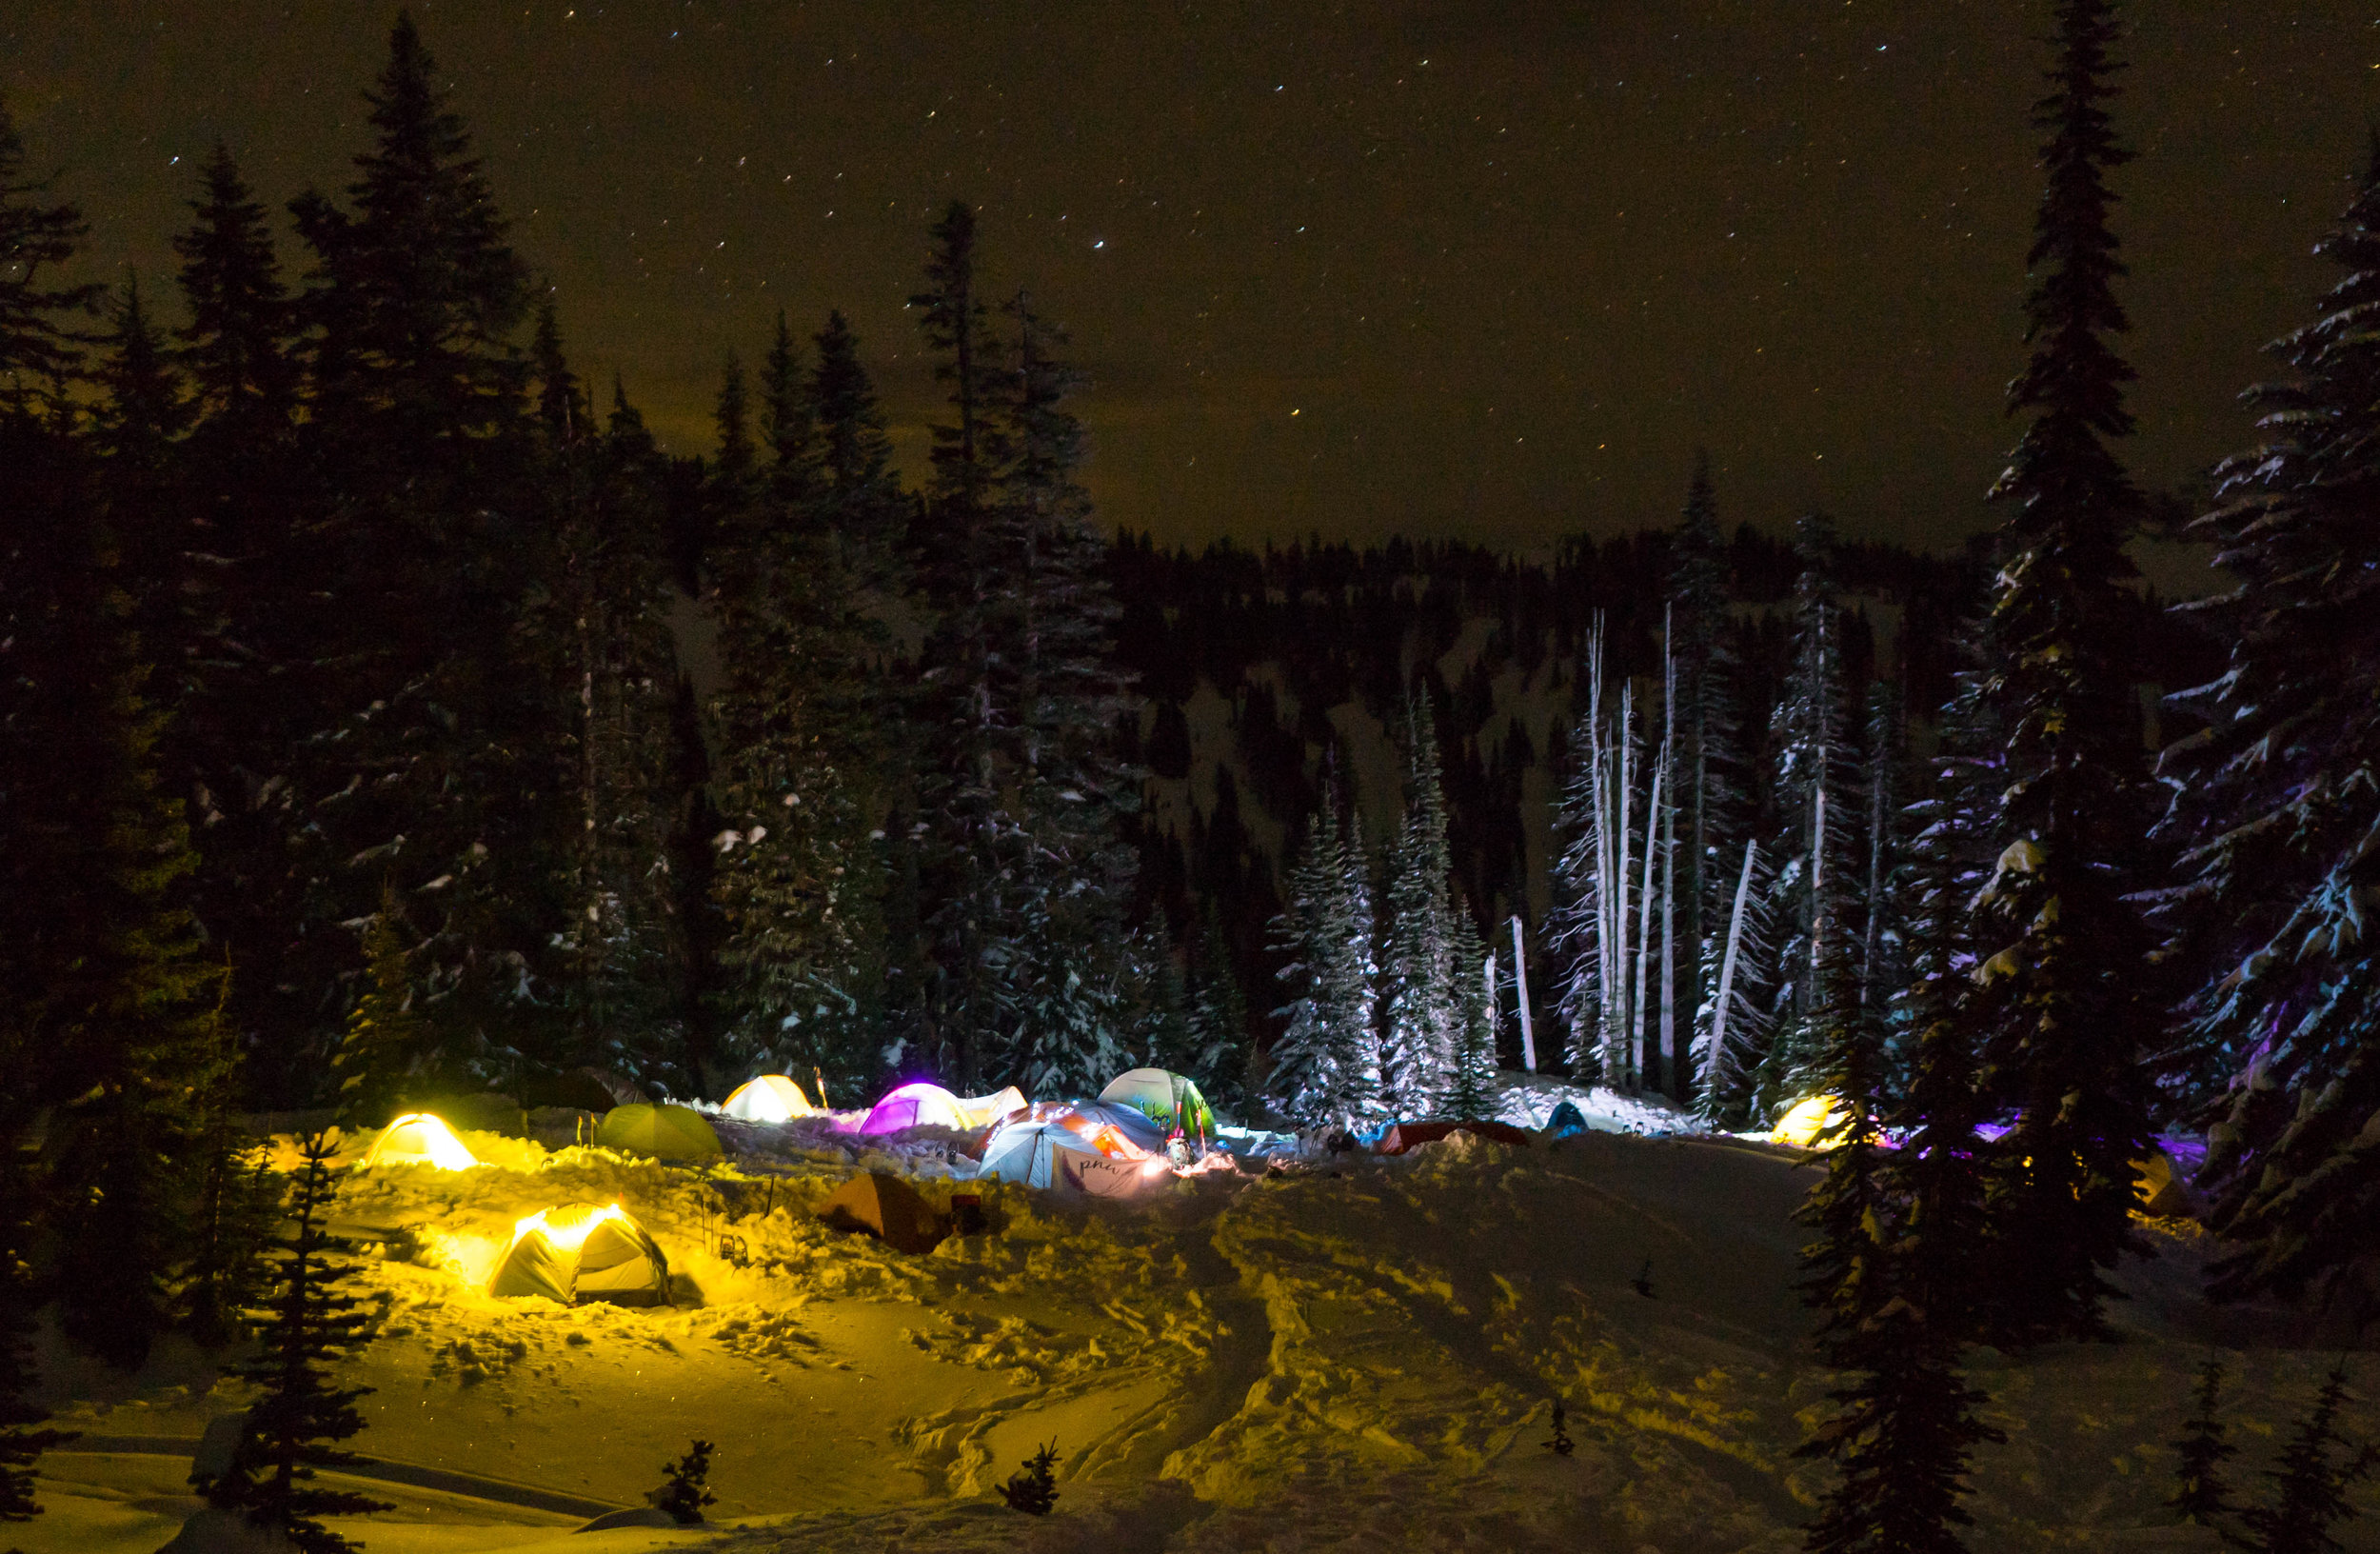 All of our tents under the stars!